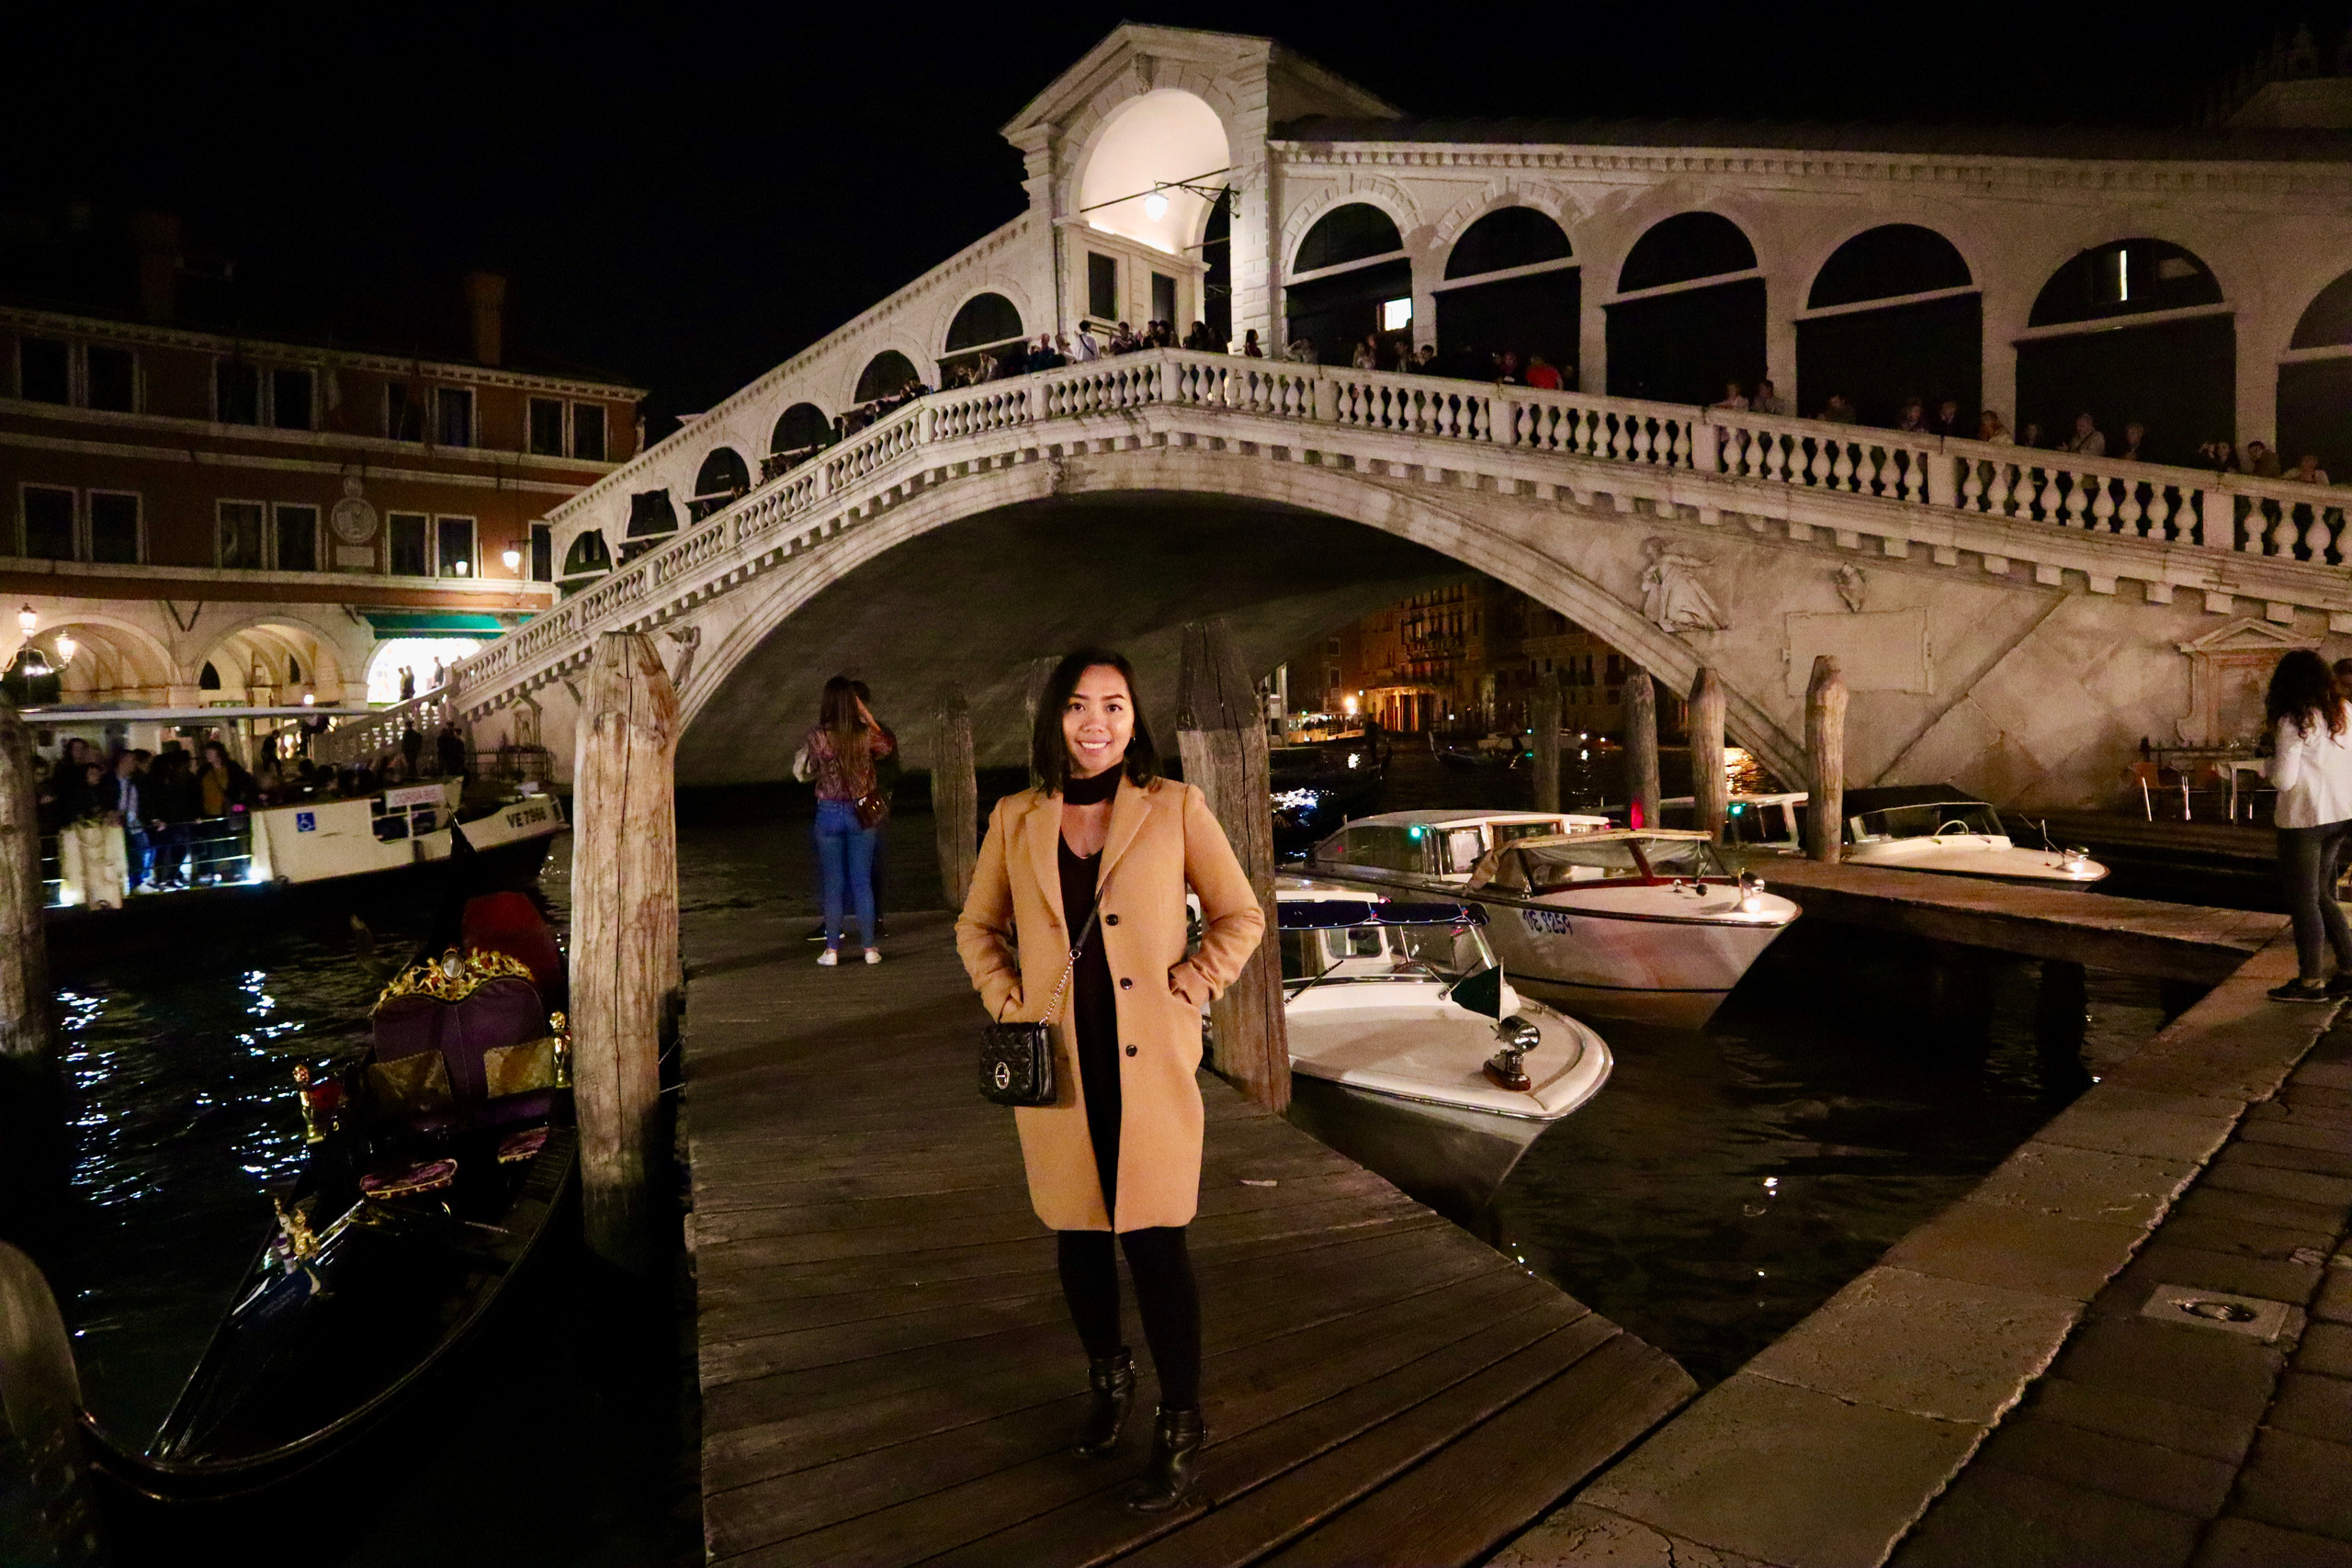 Gorgeous Rialto Bridge at night in Venice, Italy by Biteinerary